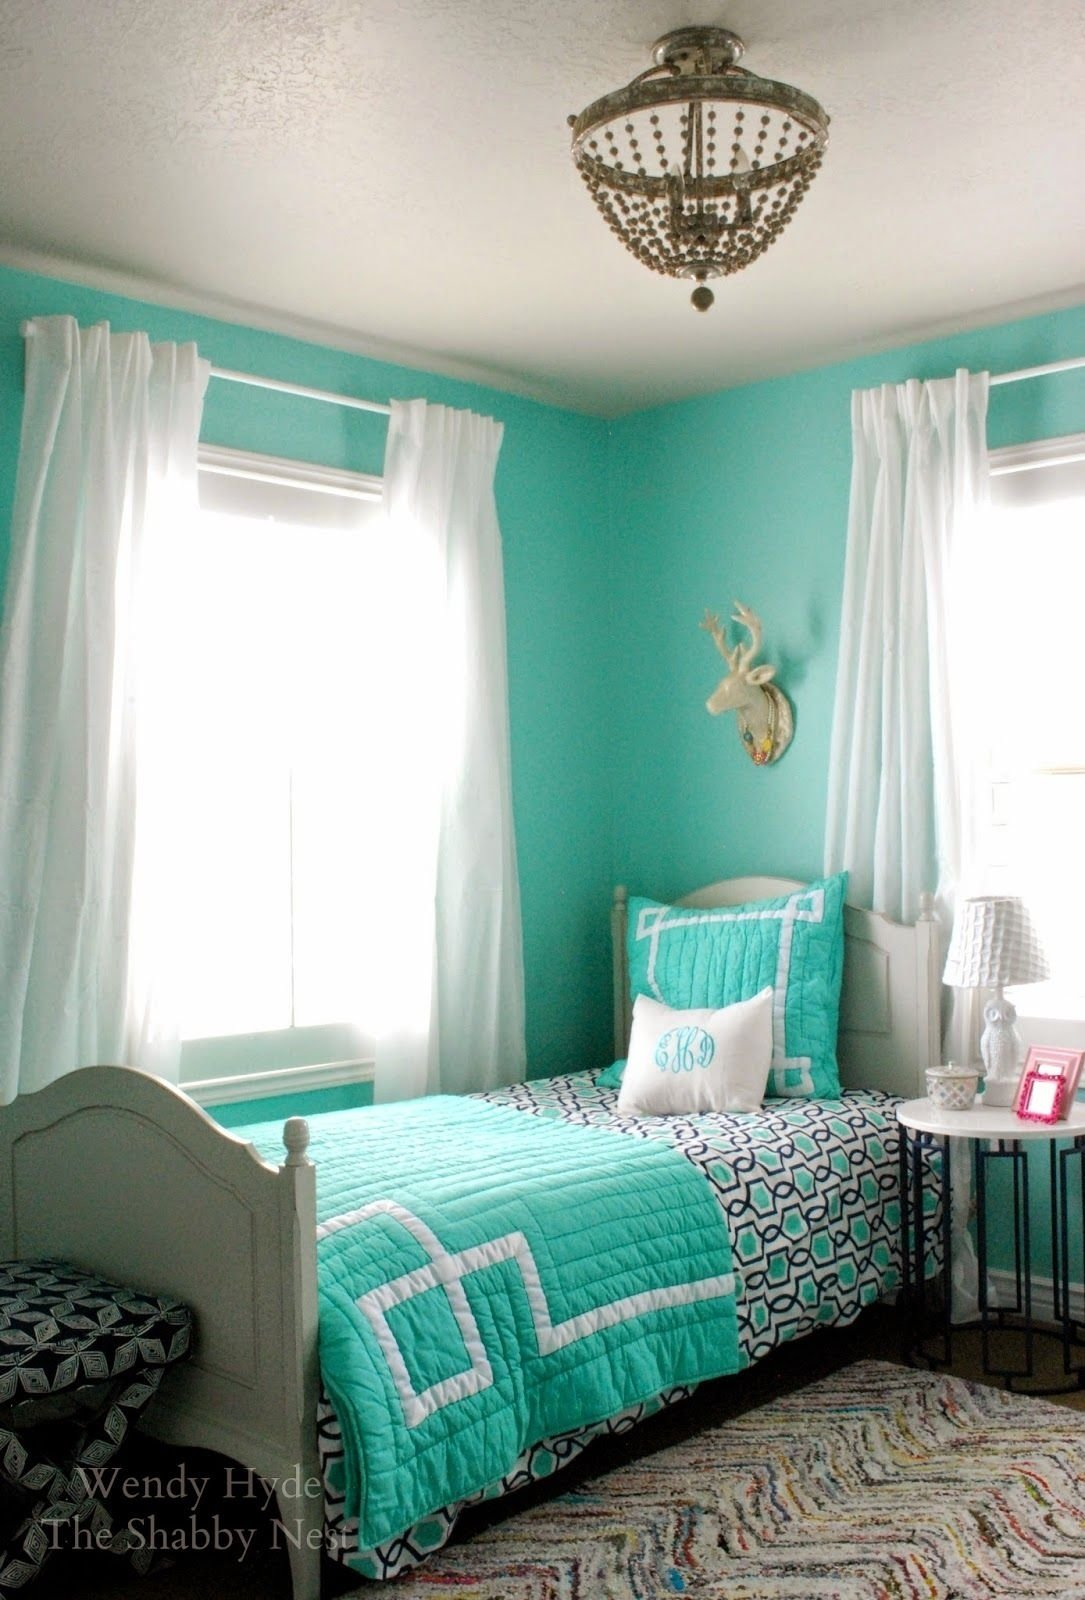 10 Attractive Blue And Green Bedroom Ideas 15 best images about turquoise room decorations room walls and 2021